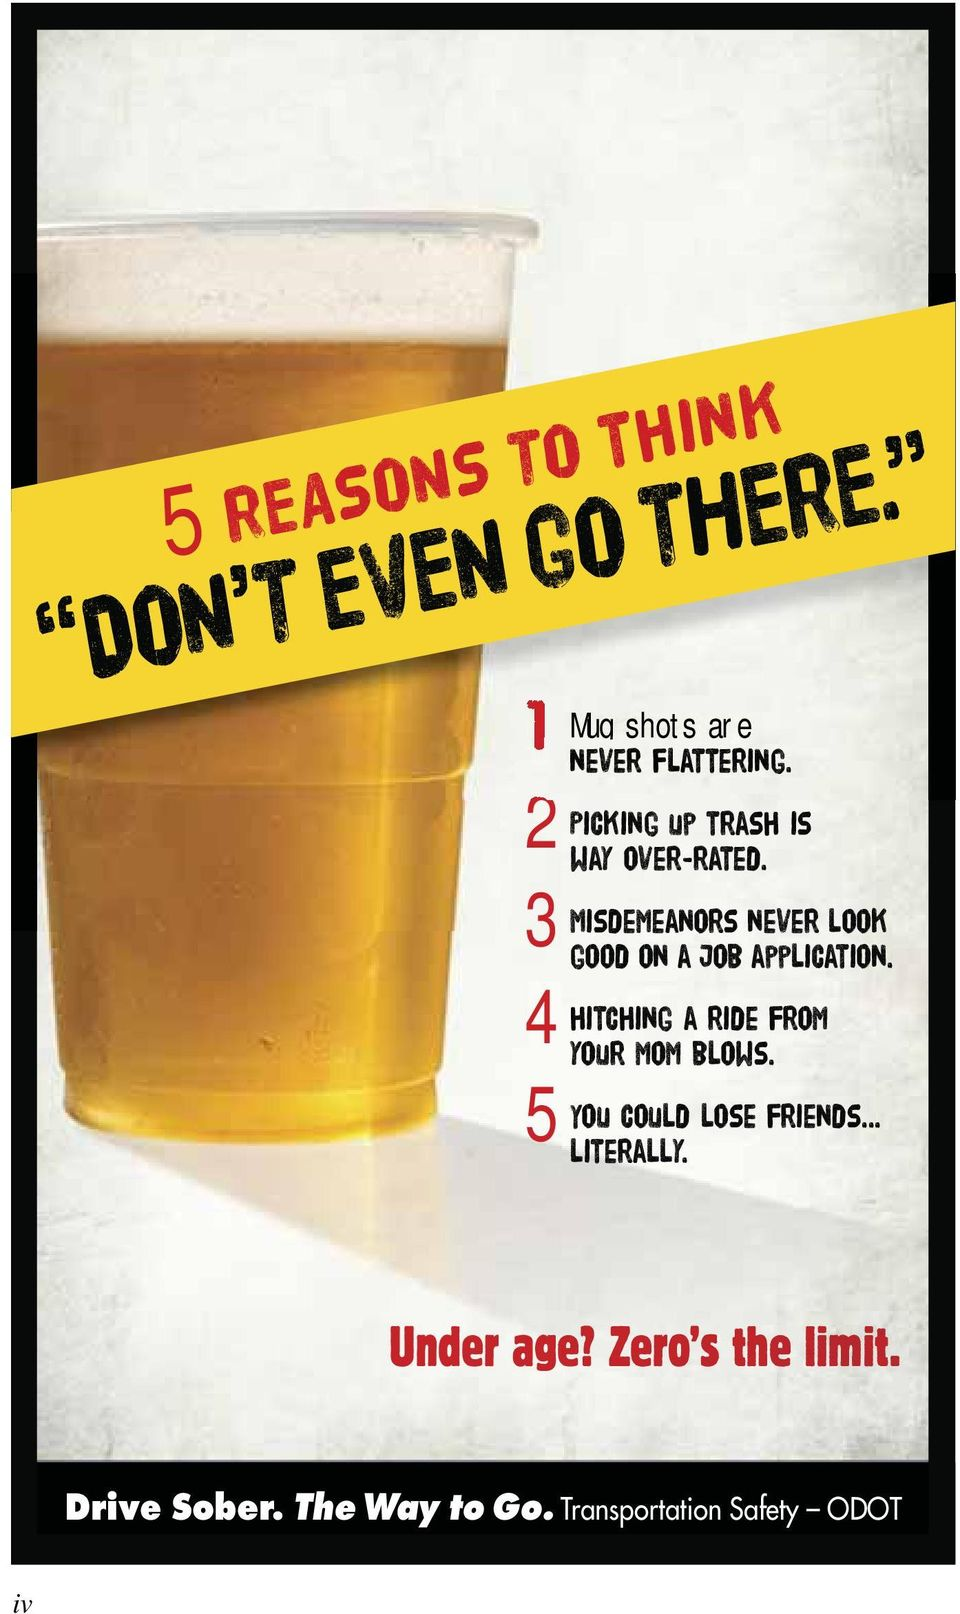 Drive Sober. The Way to Go.